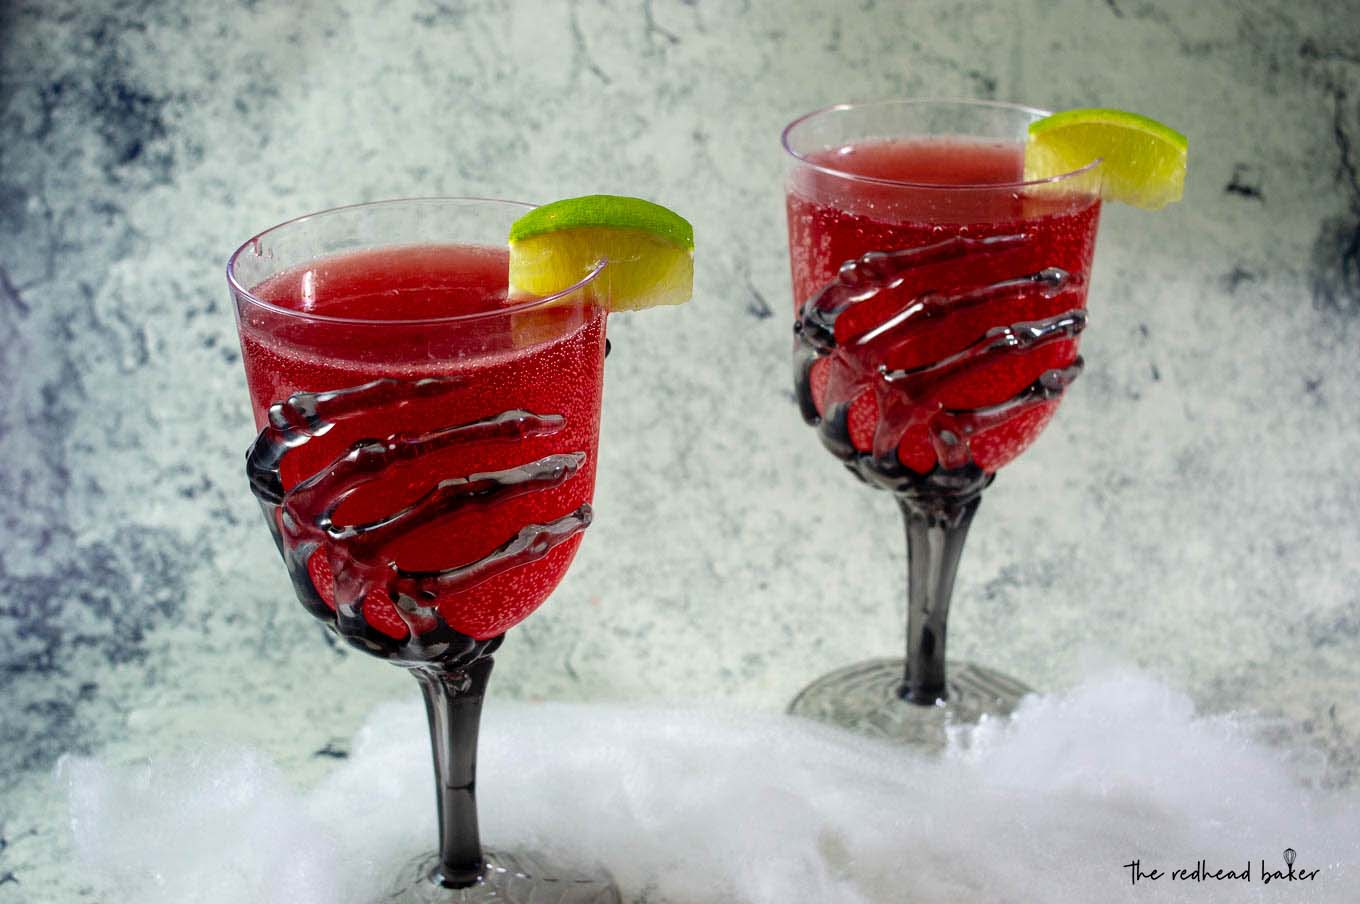 Two glasses of pomegranate margaritas in glasses with skeleton hand stems